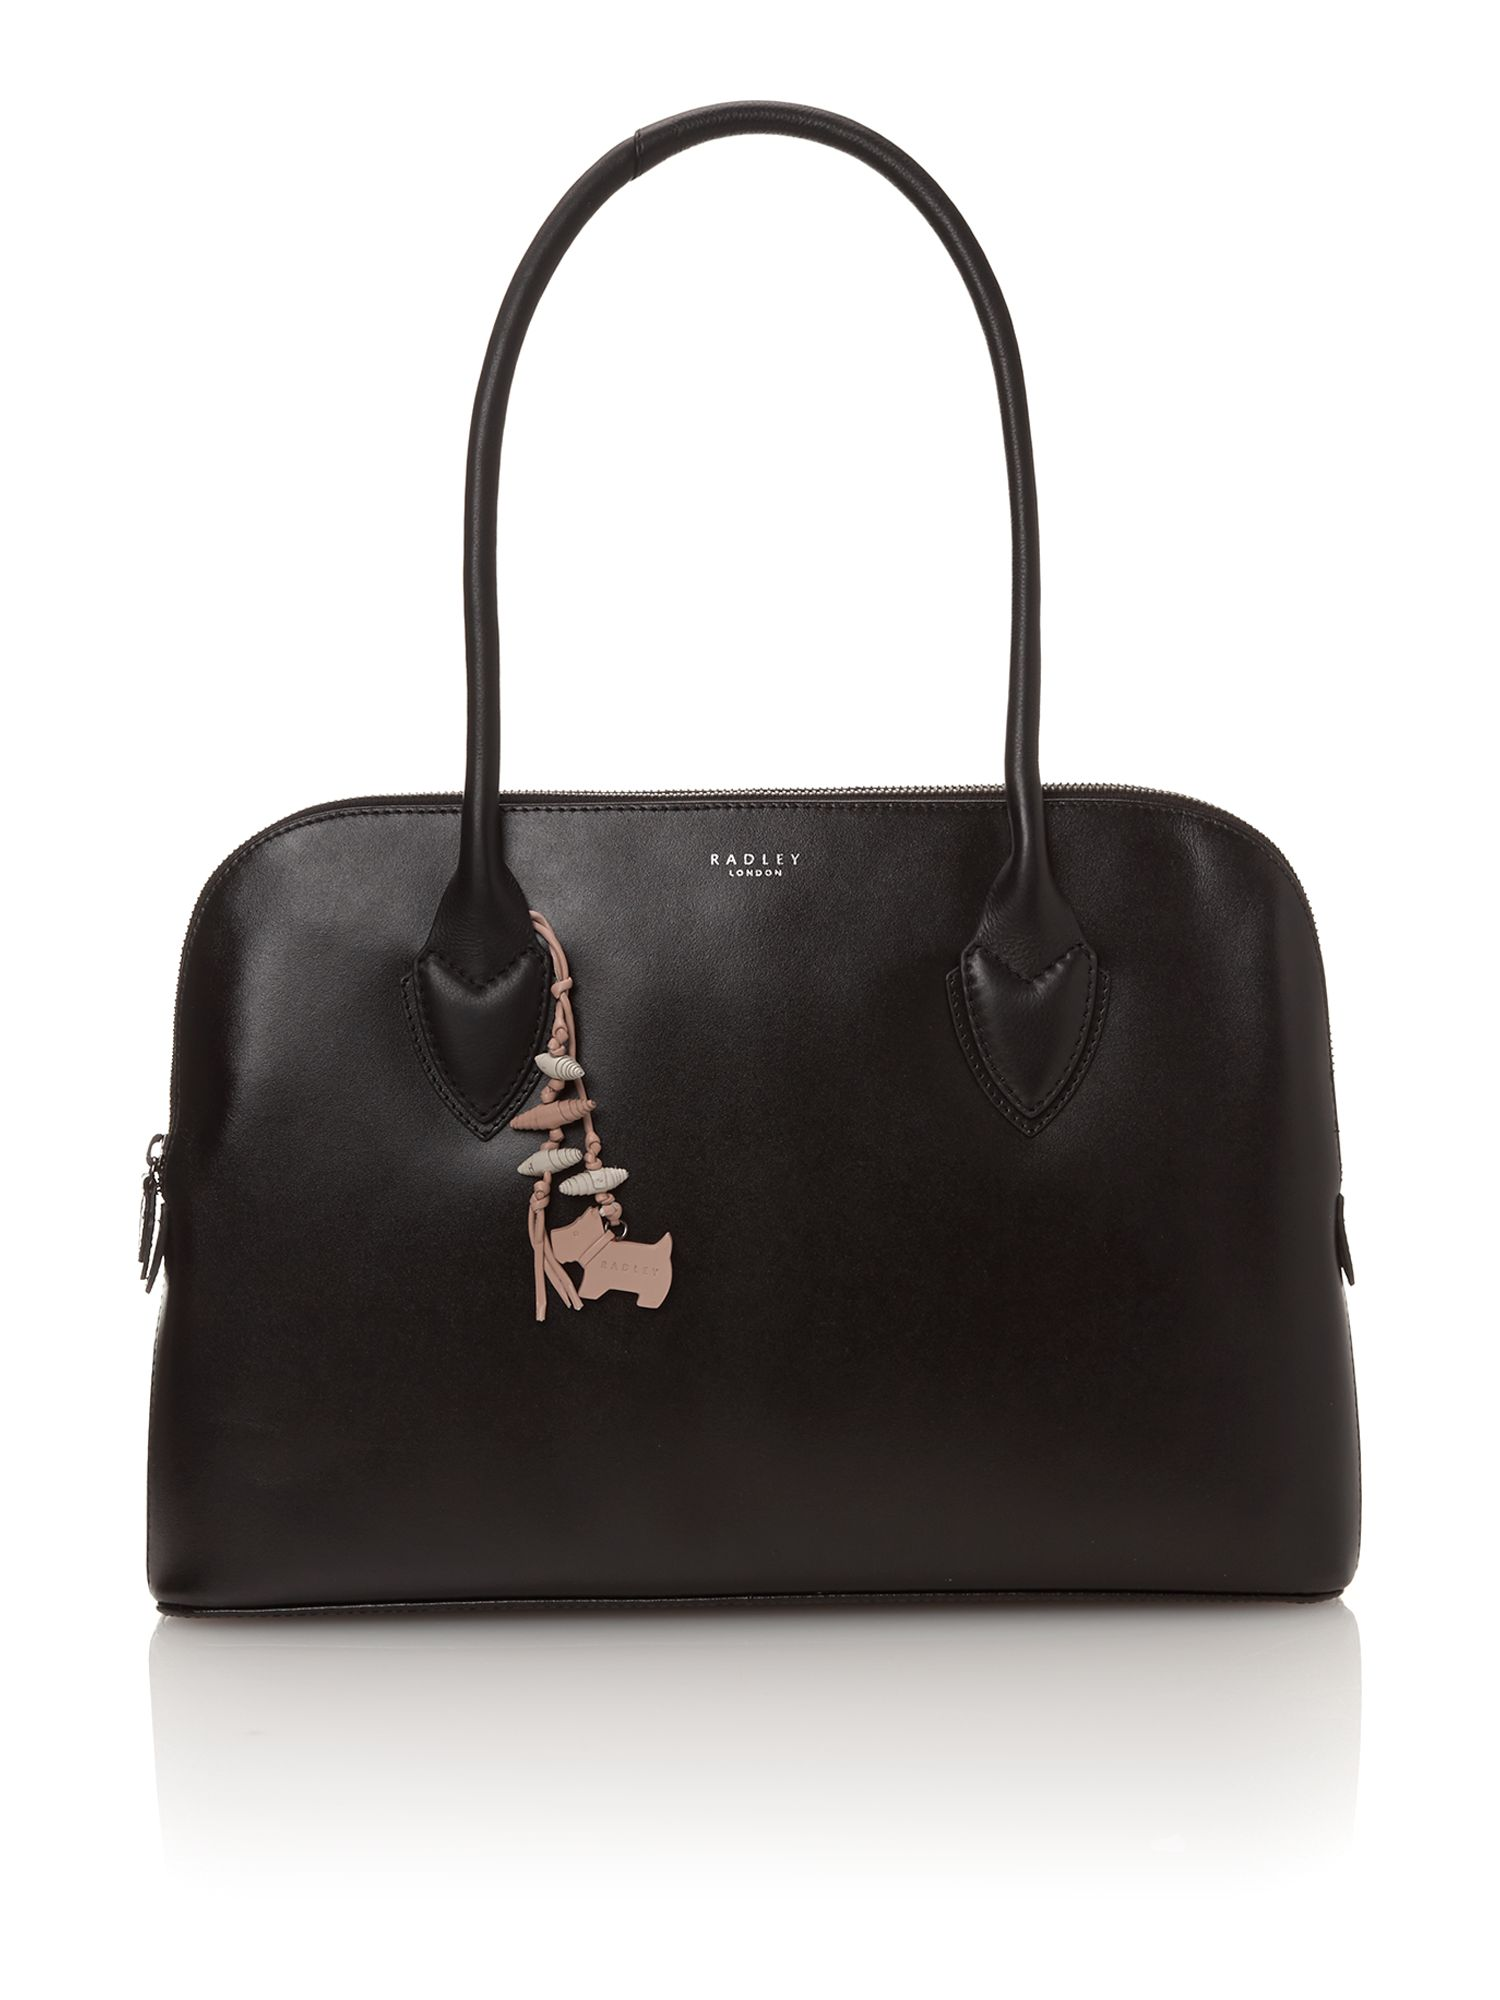 Aldgate black large tote bag